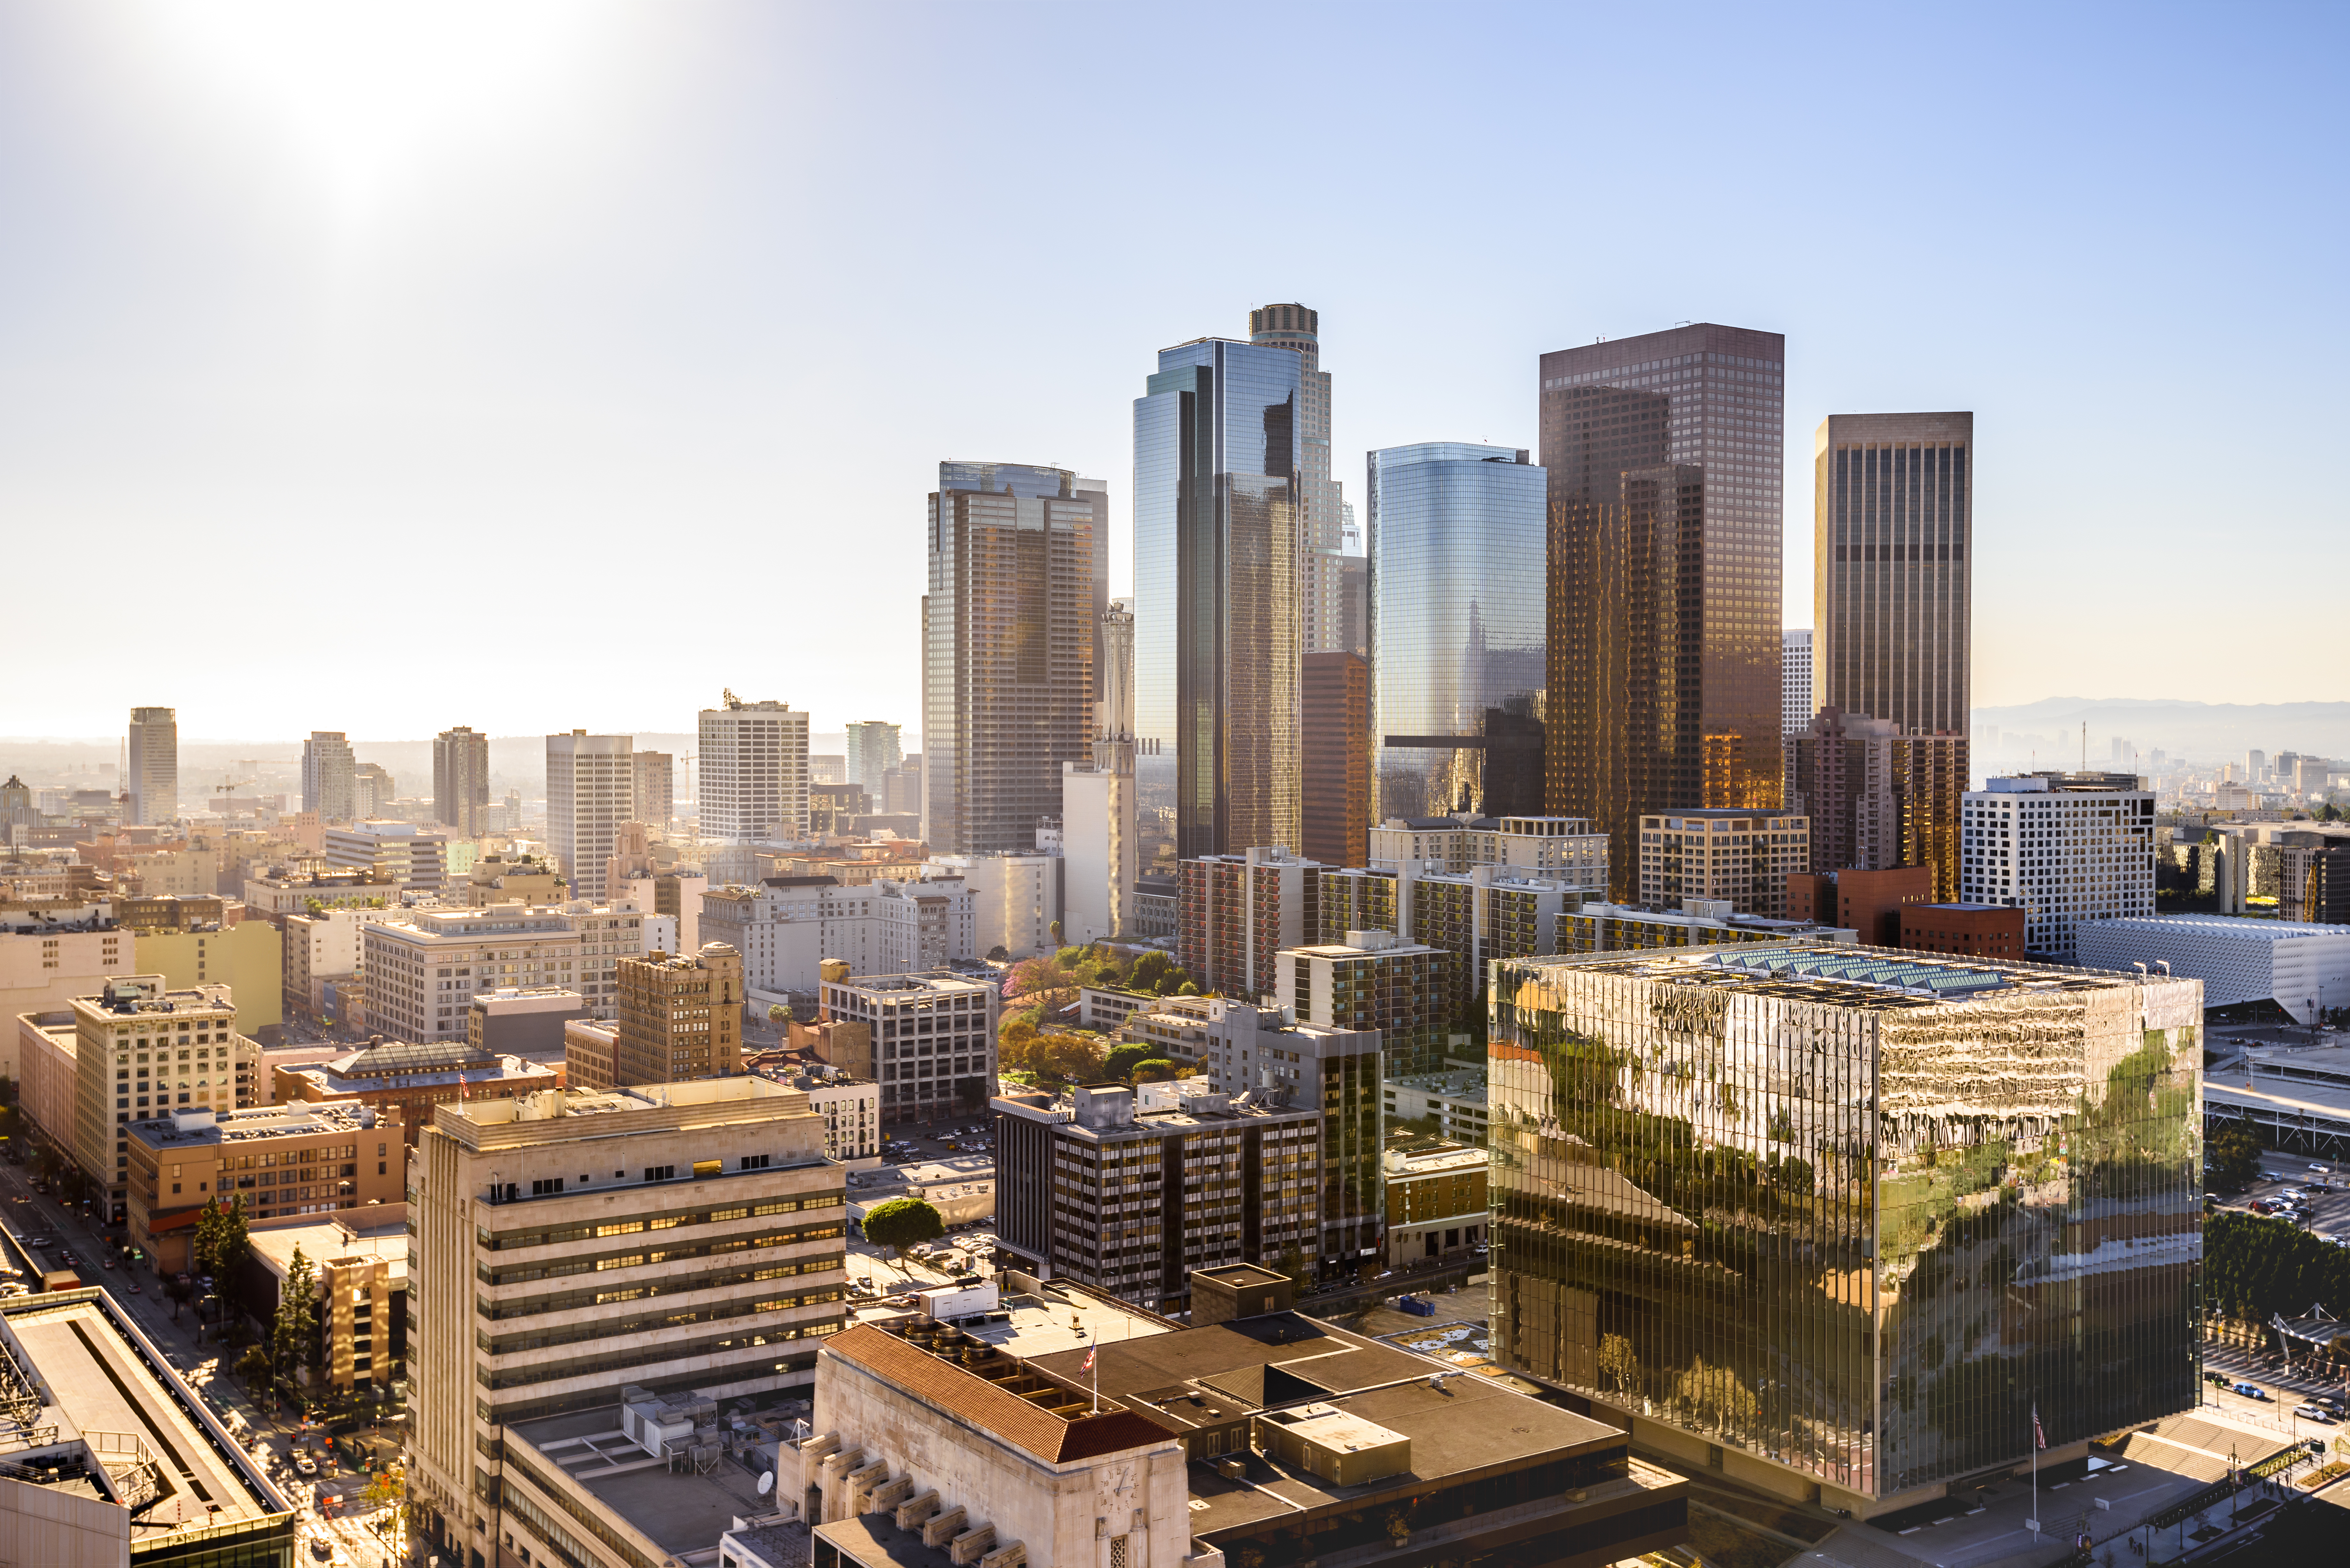 Aerial view of LA with sun gleaming off buildings